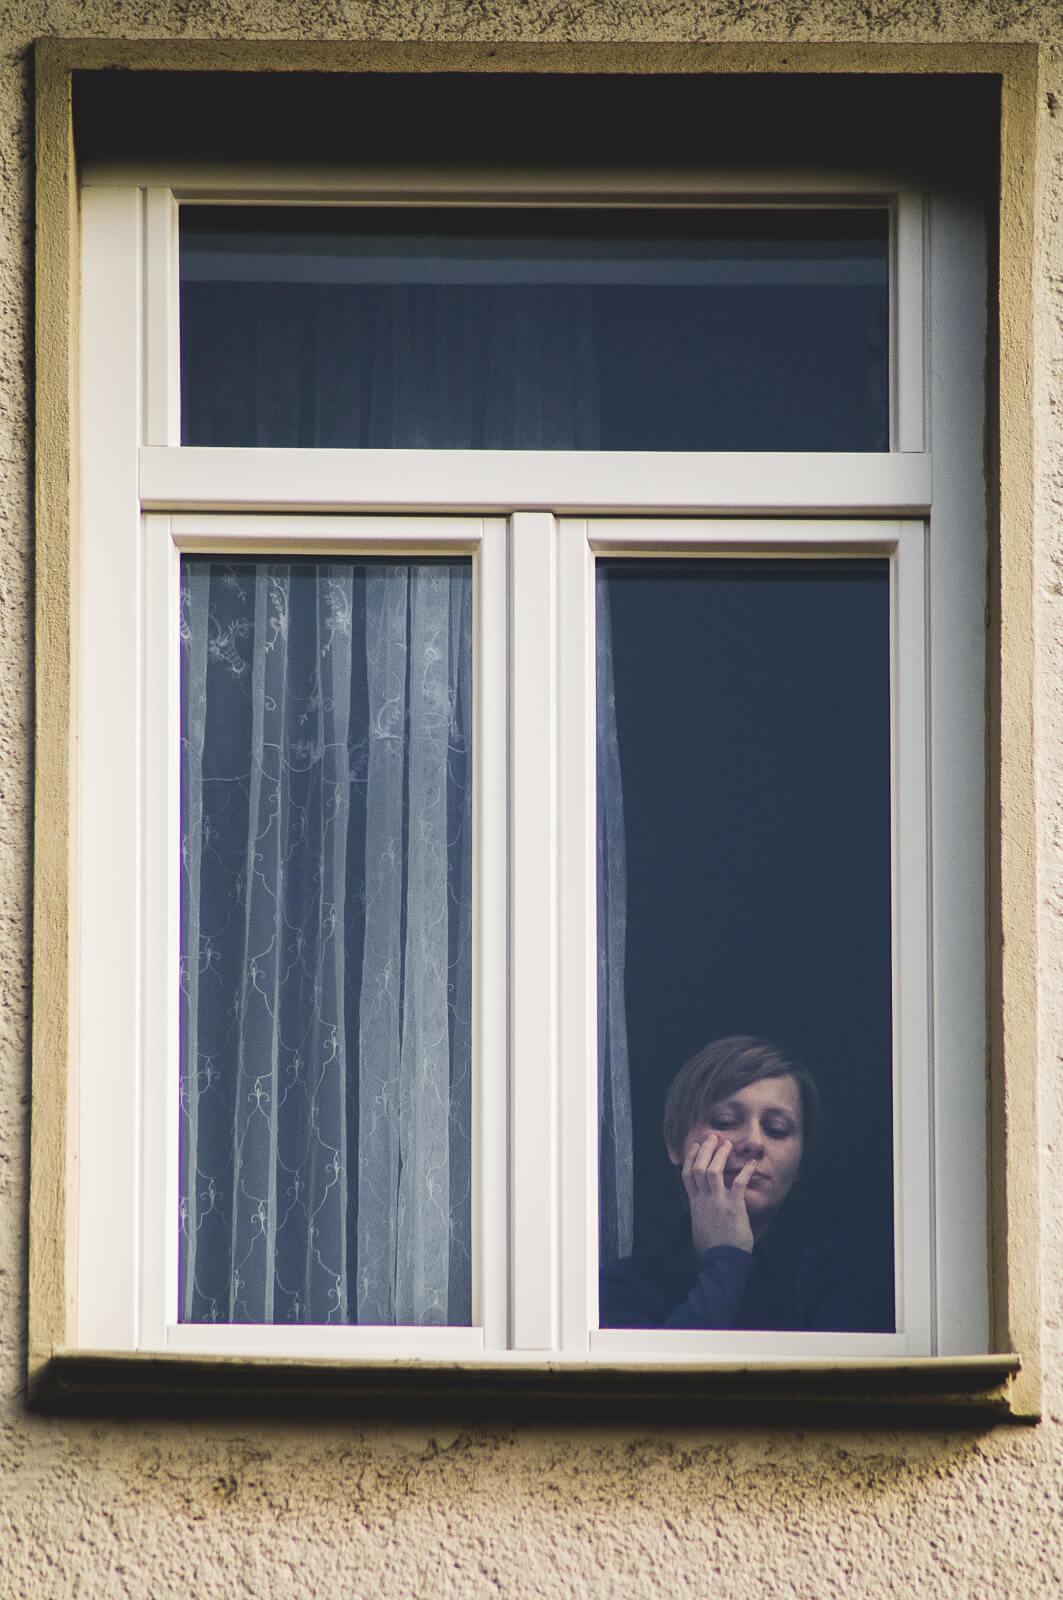 A young woman is looking down on the street behind closed wiindows